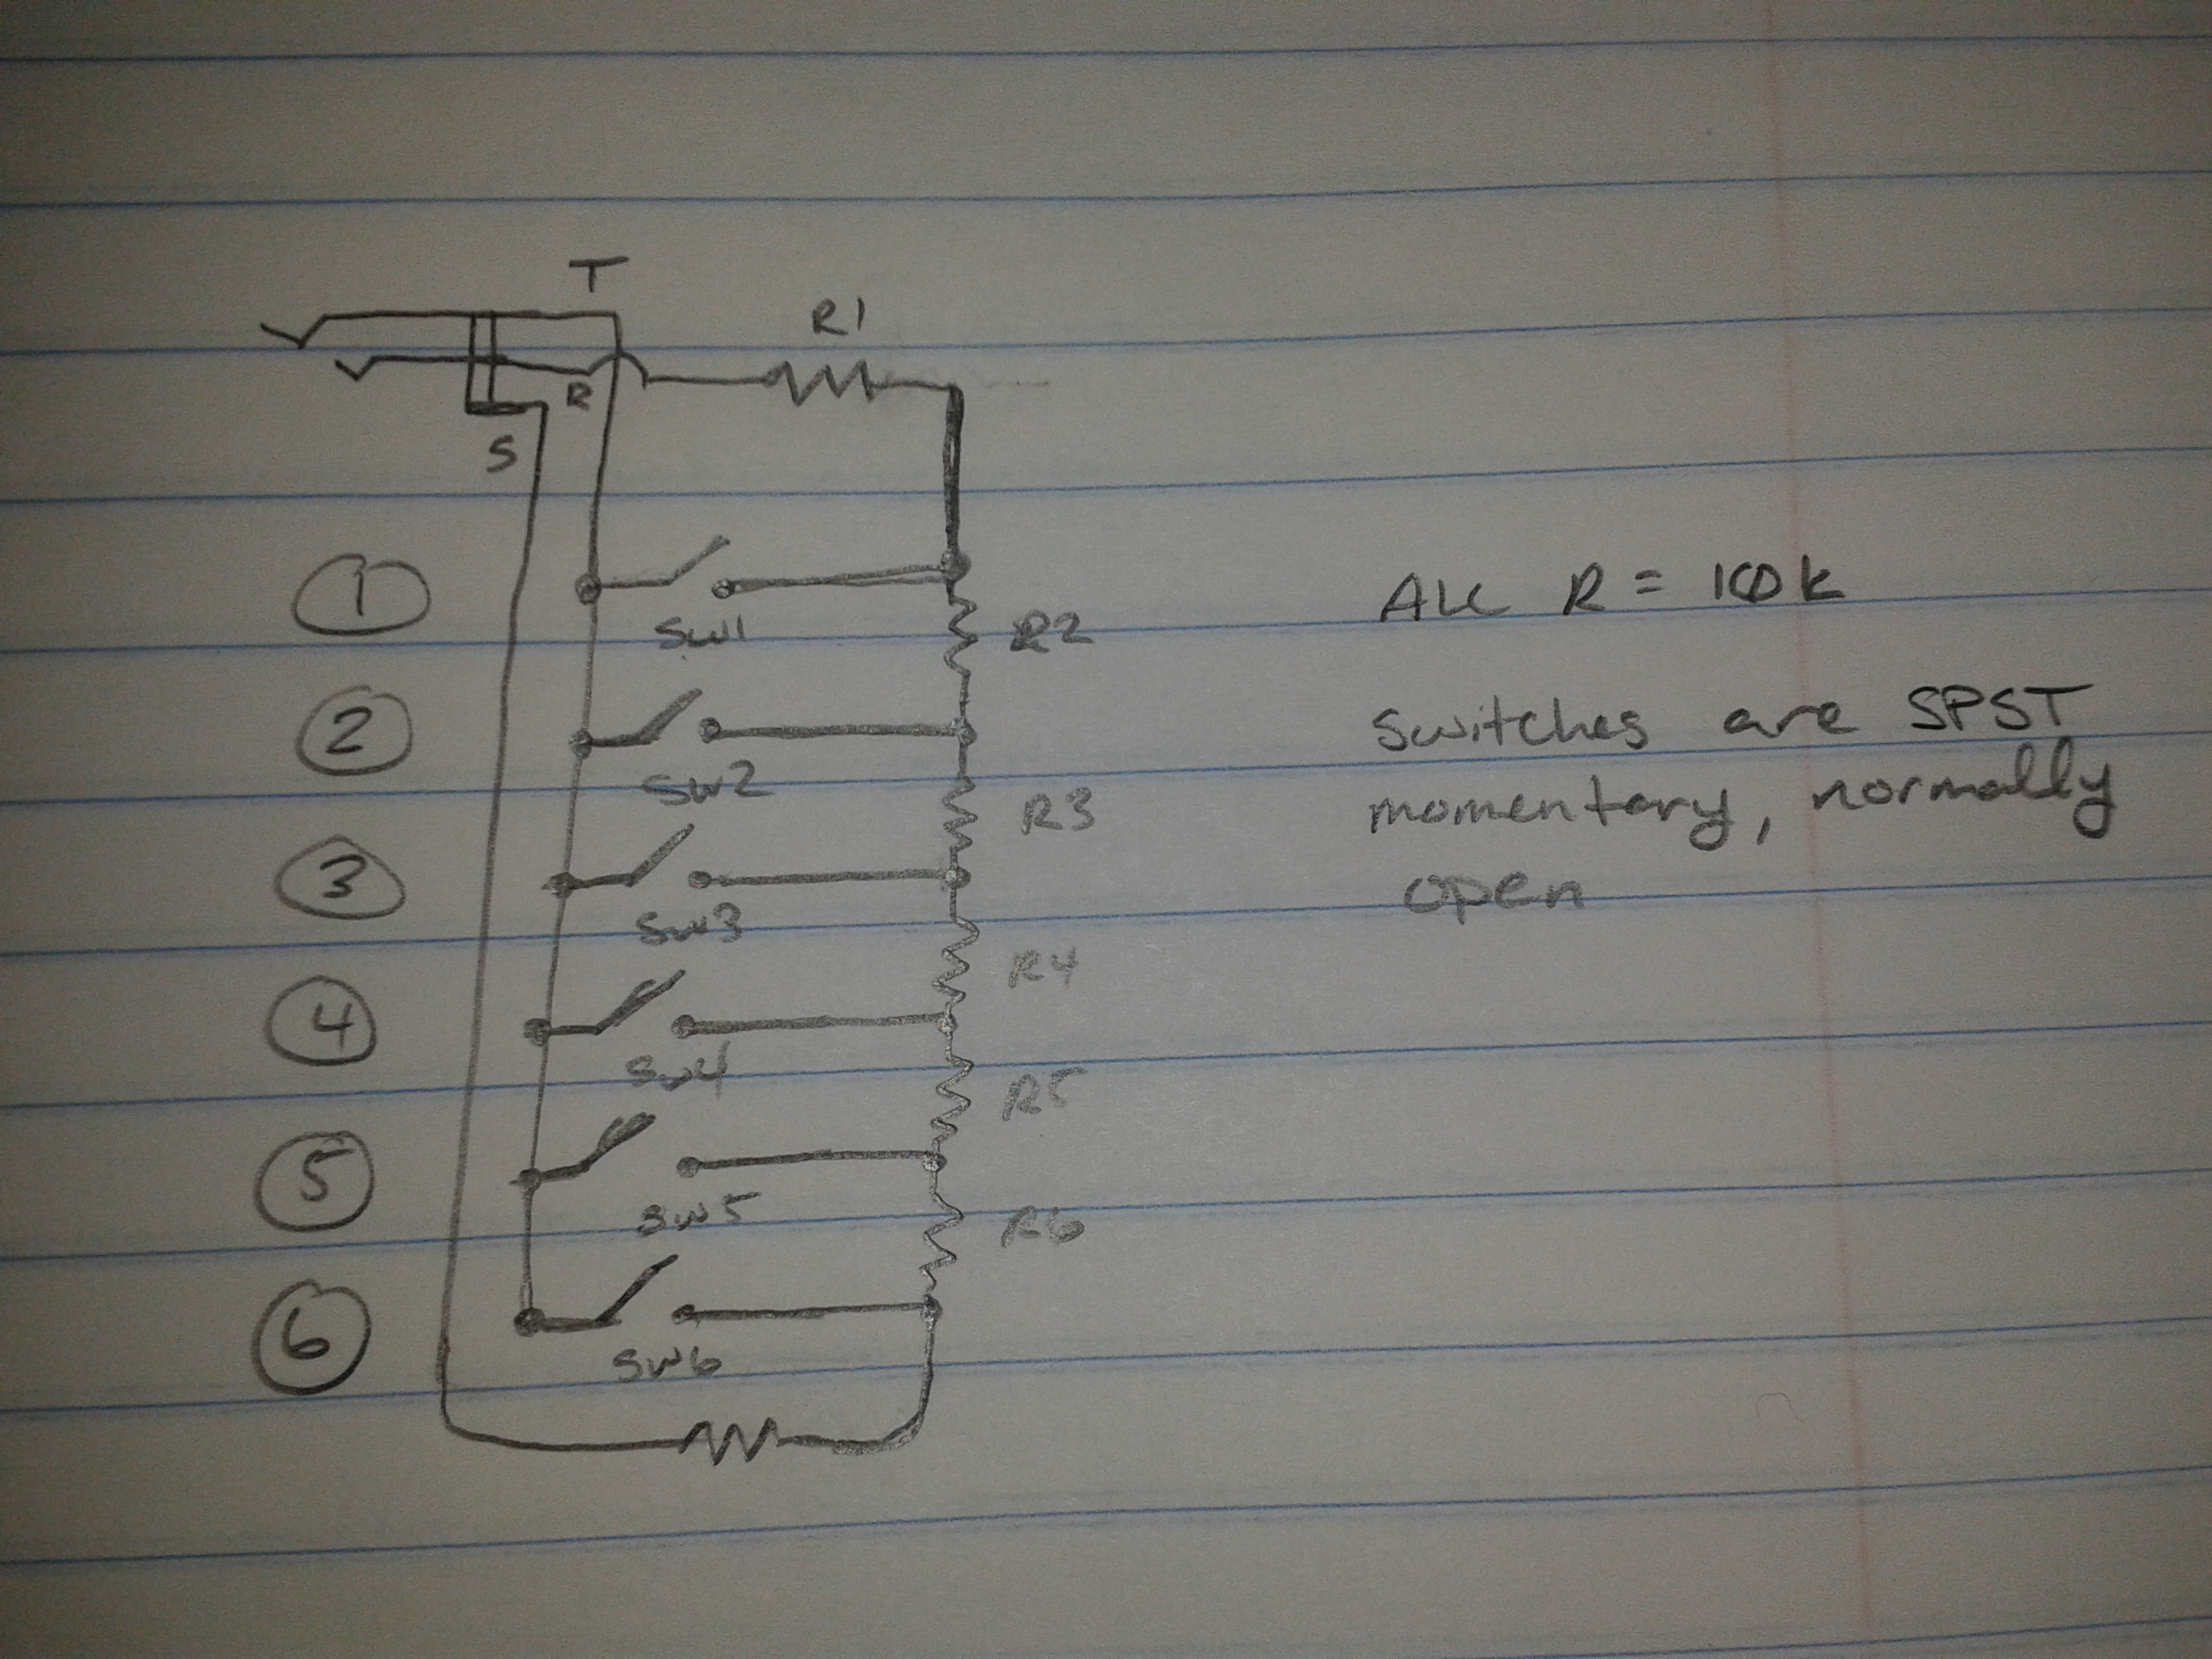 Tc Helicon Switch 6 Schematic Just Jamie Singer Pedal Wiring Diagram Following The Pcb Traces And Confirmed By Testing With A Multimeter Reveal This To Be Of Device